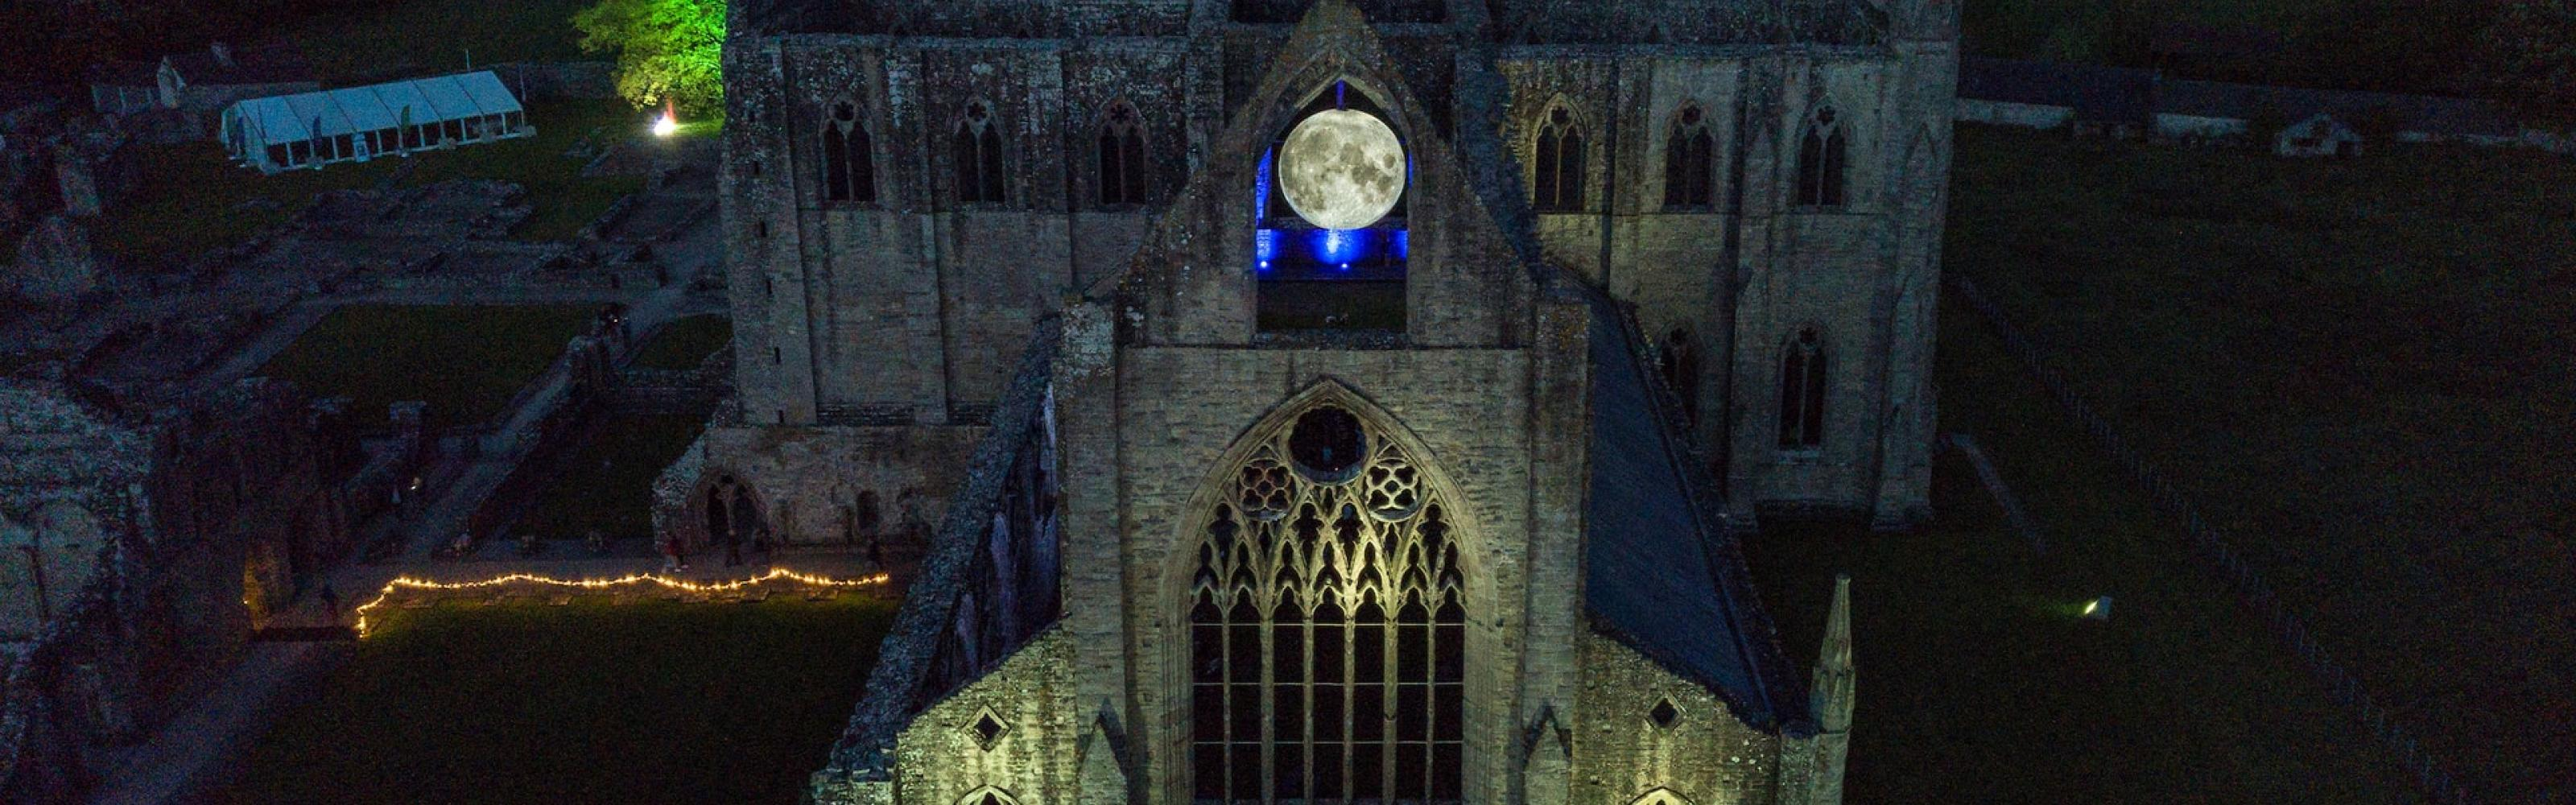 Discover Haunted Locations And Scary Stories Travel Trade Wales